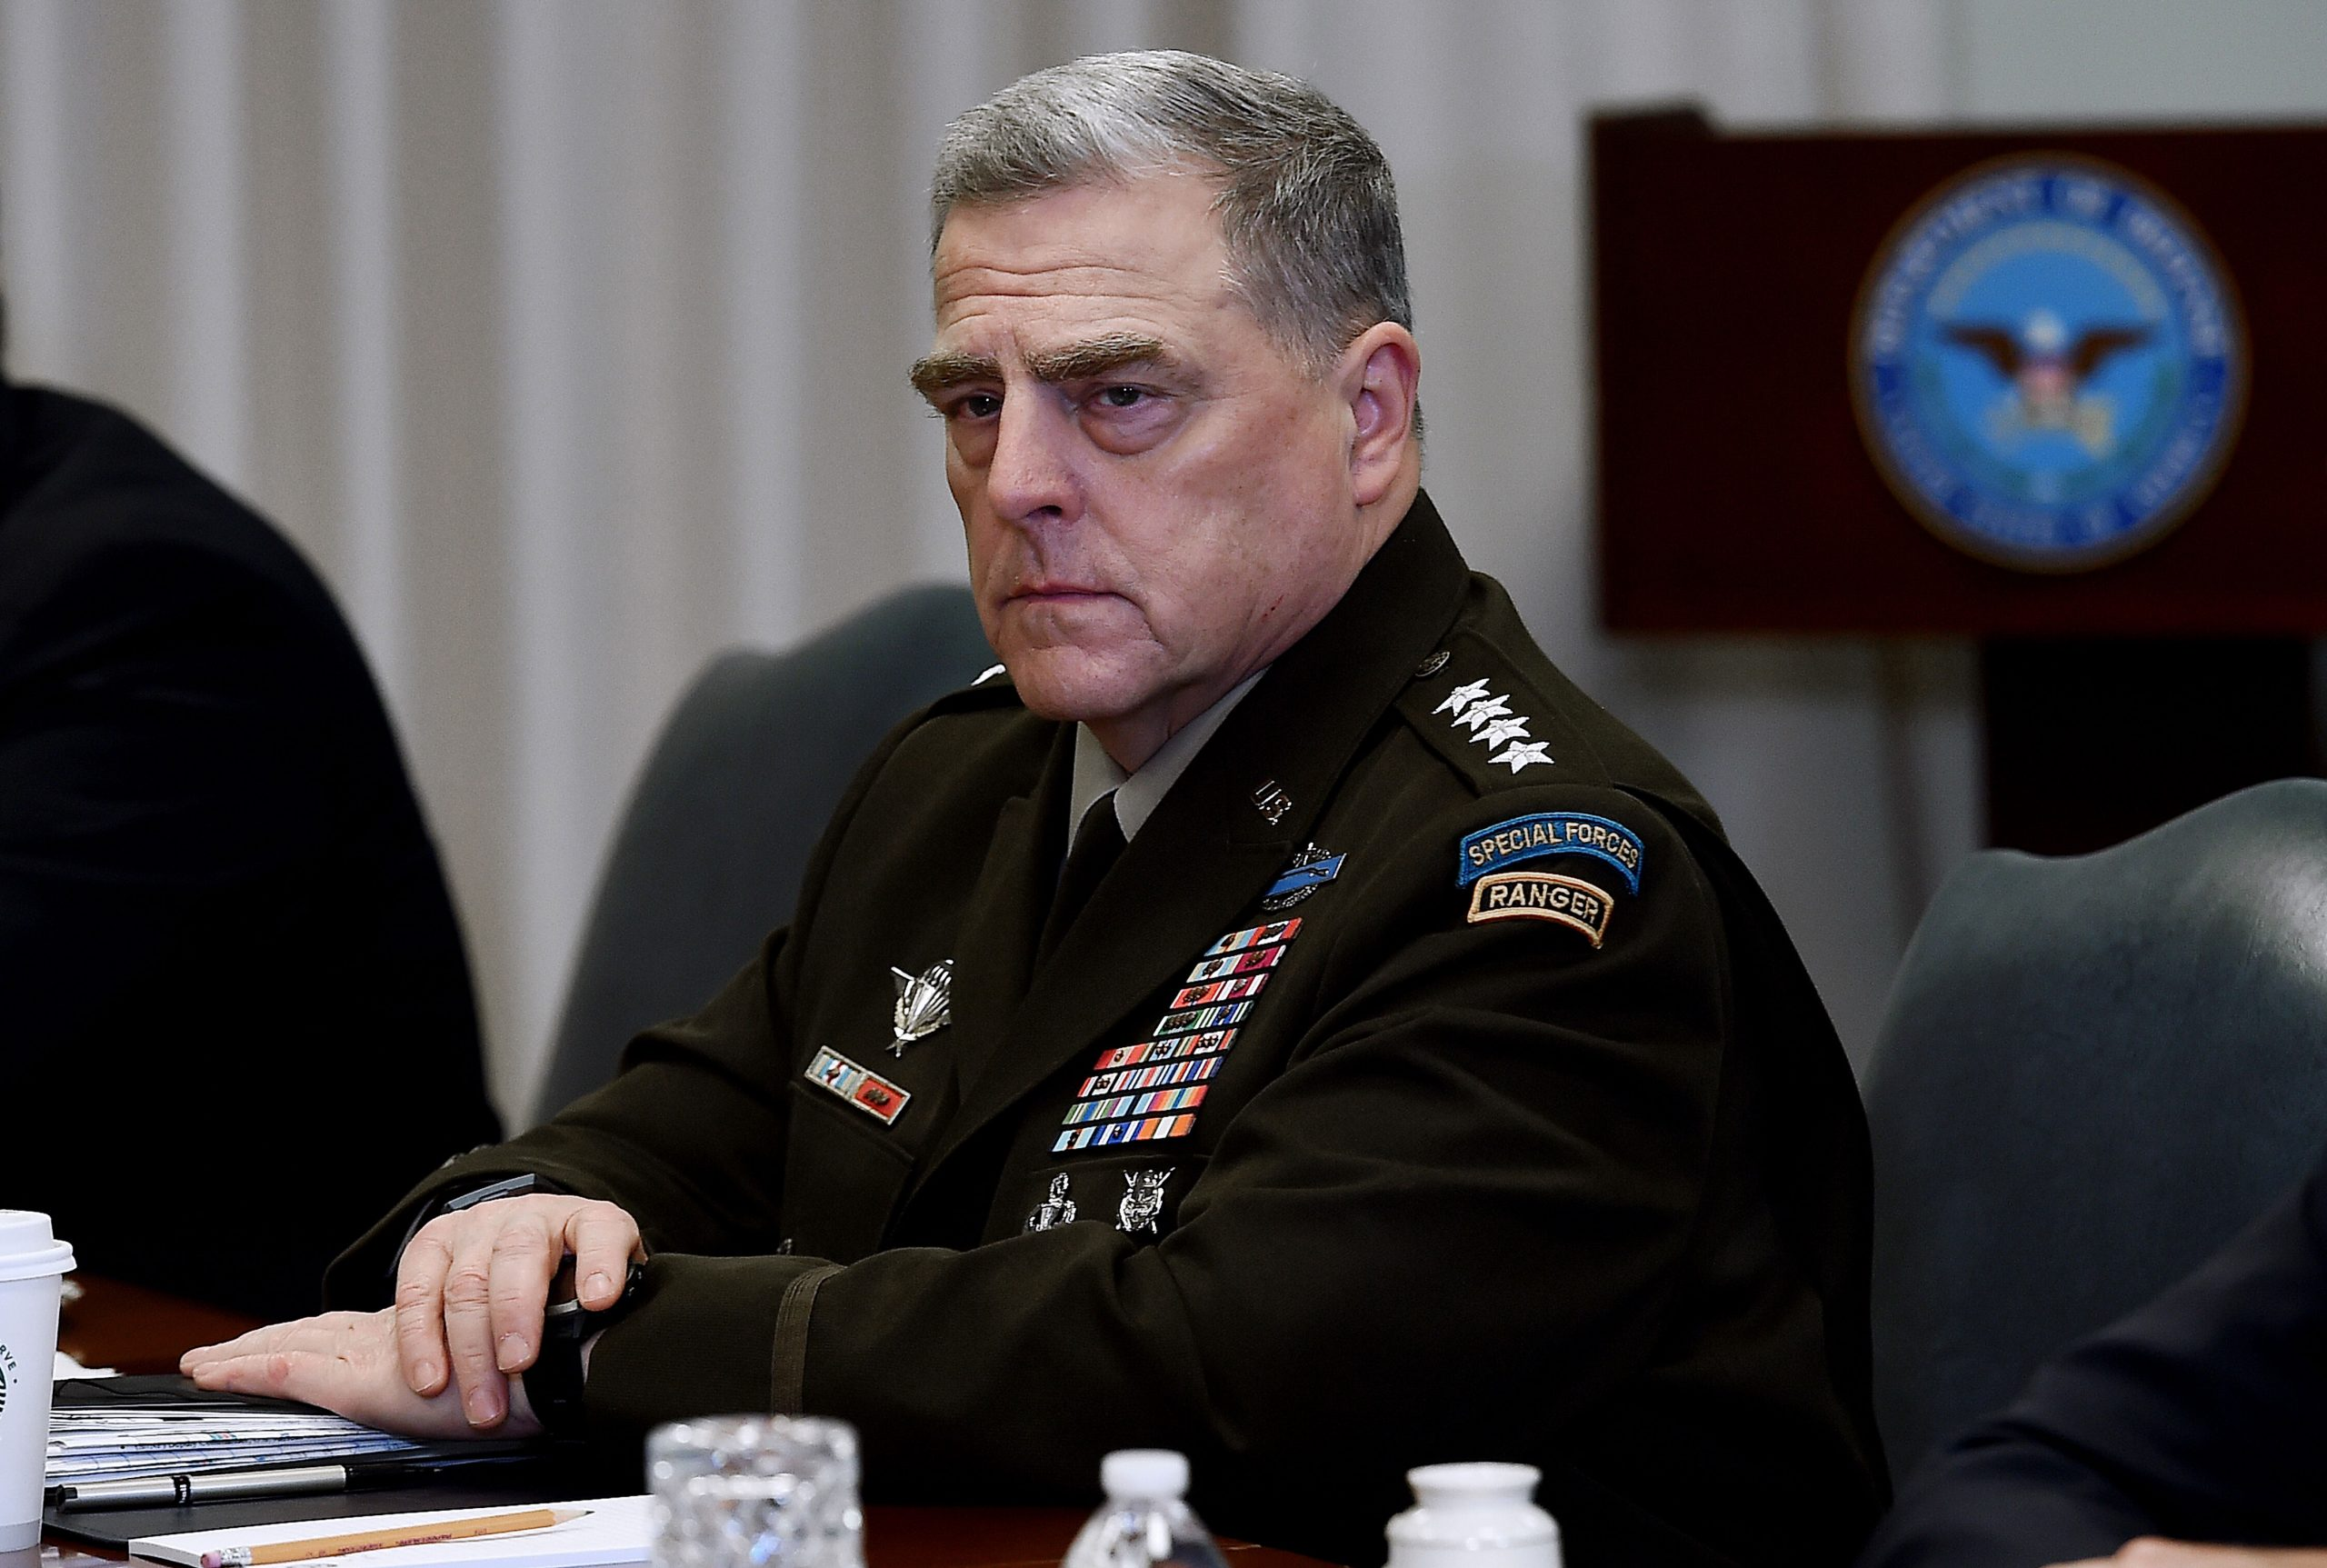 <i>Olivier Douliery/AFP/Getty Images</i><br/>Joint Chiefs Chairman Gen. Mark Milley often found he was the lone voice of opposition to those demands during heated Oval Office discussions